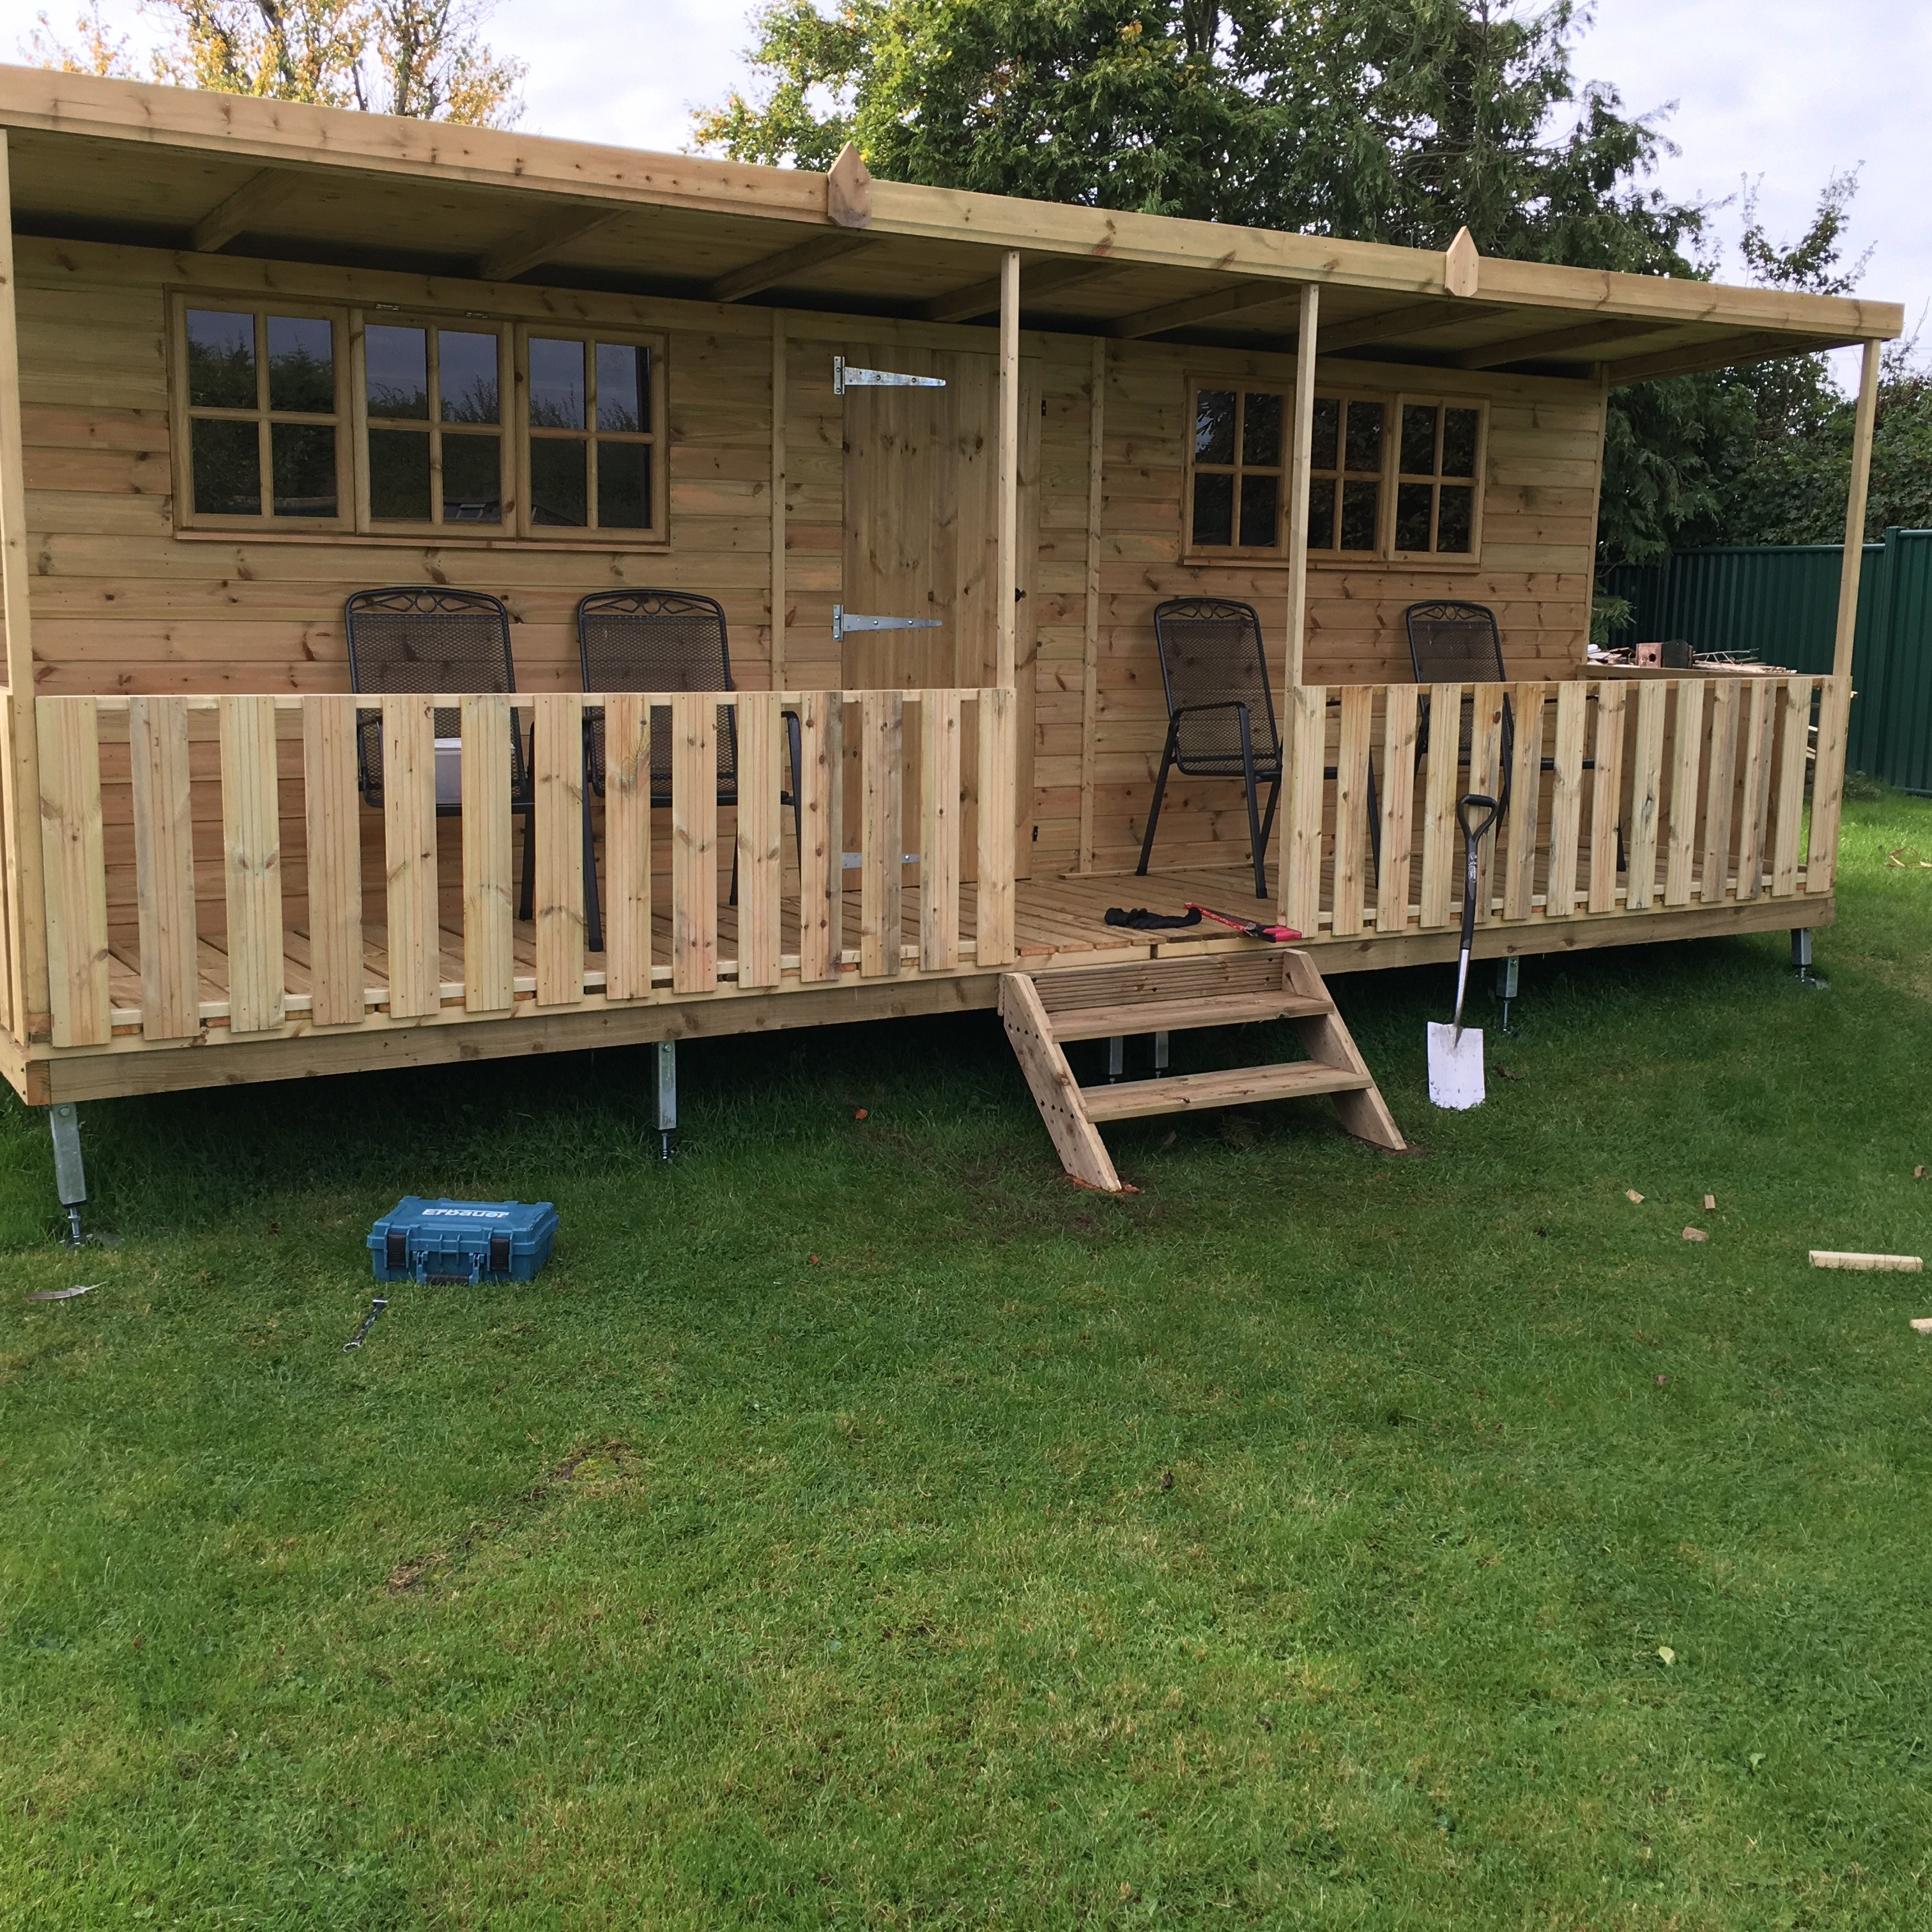 bespoke garden shed installed on deckbed - Garden Sheds With Veranda